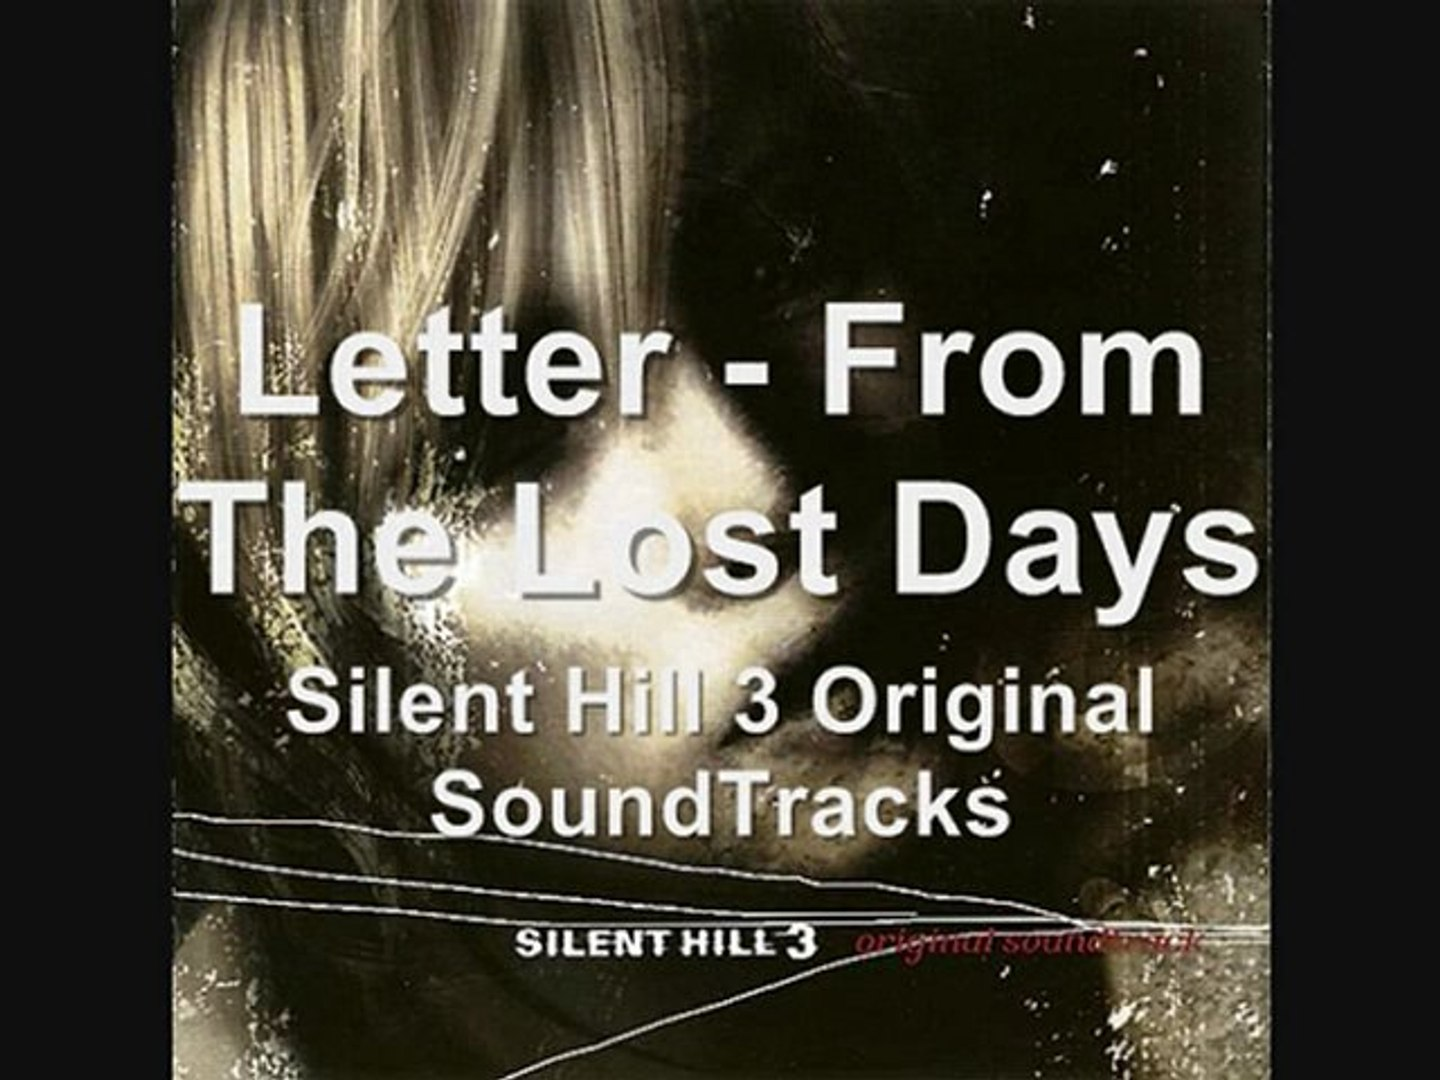 Letter From The Lost Days Silent Hill 3 Original Soundtracks